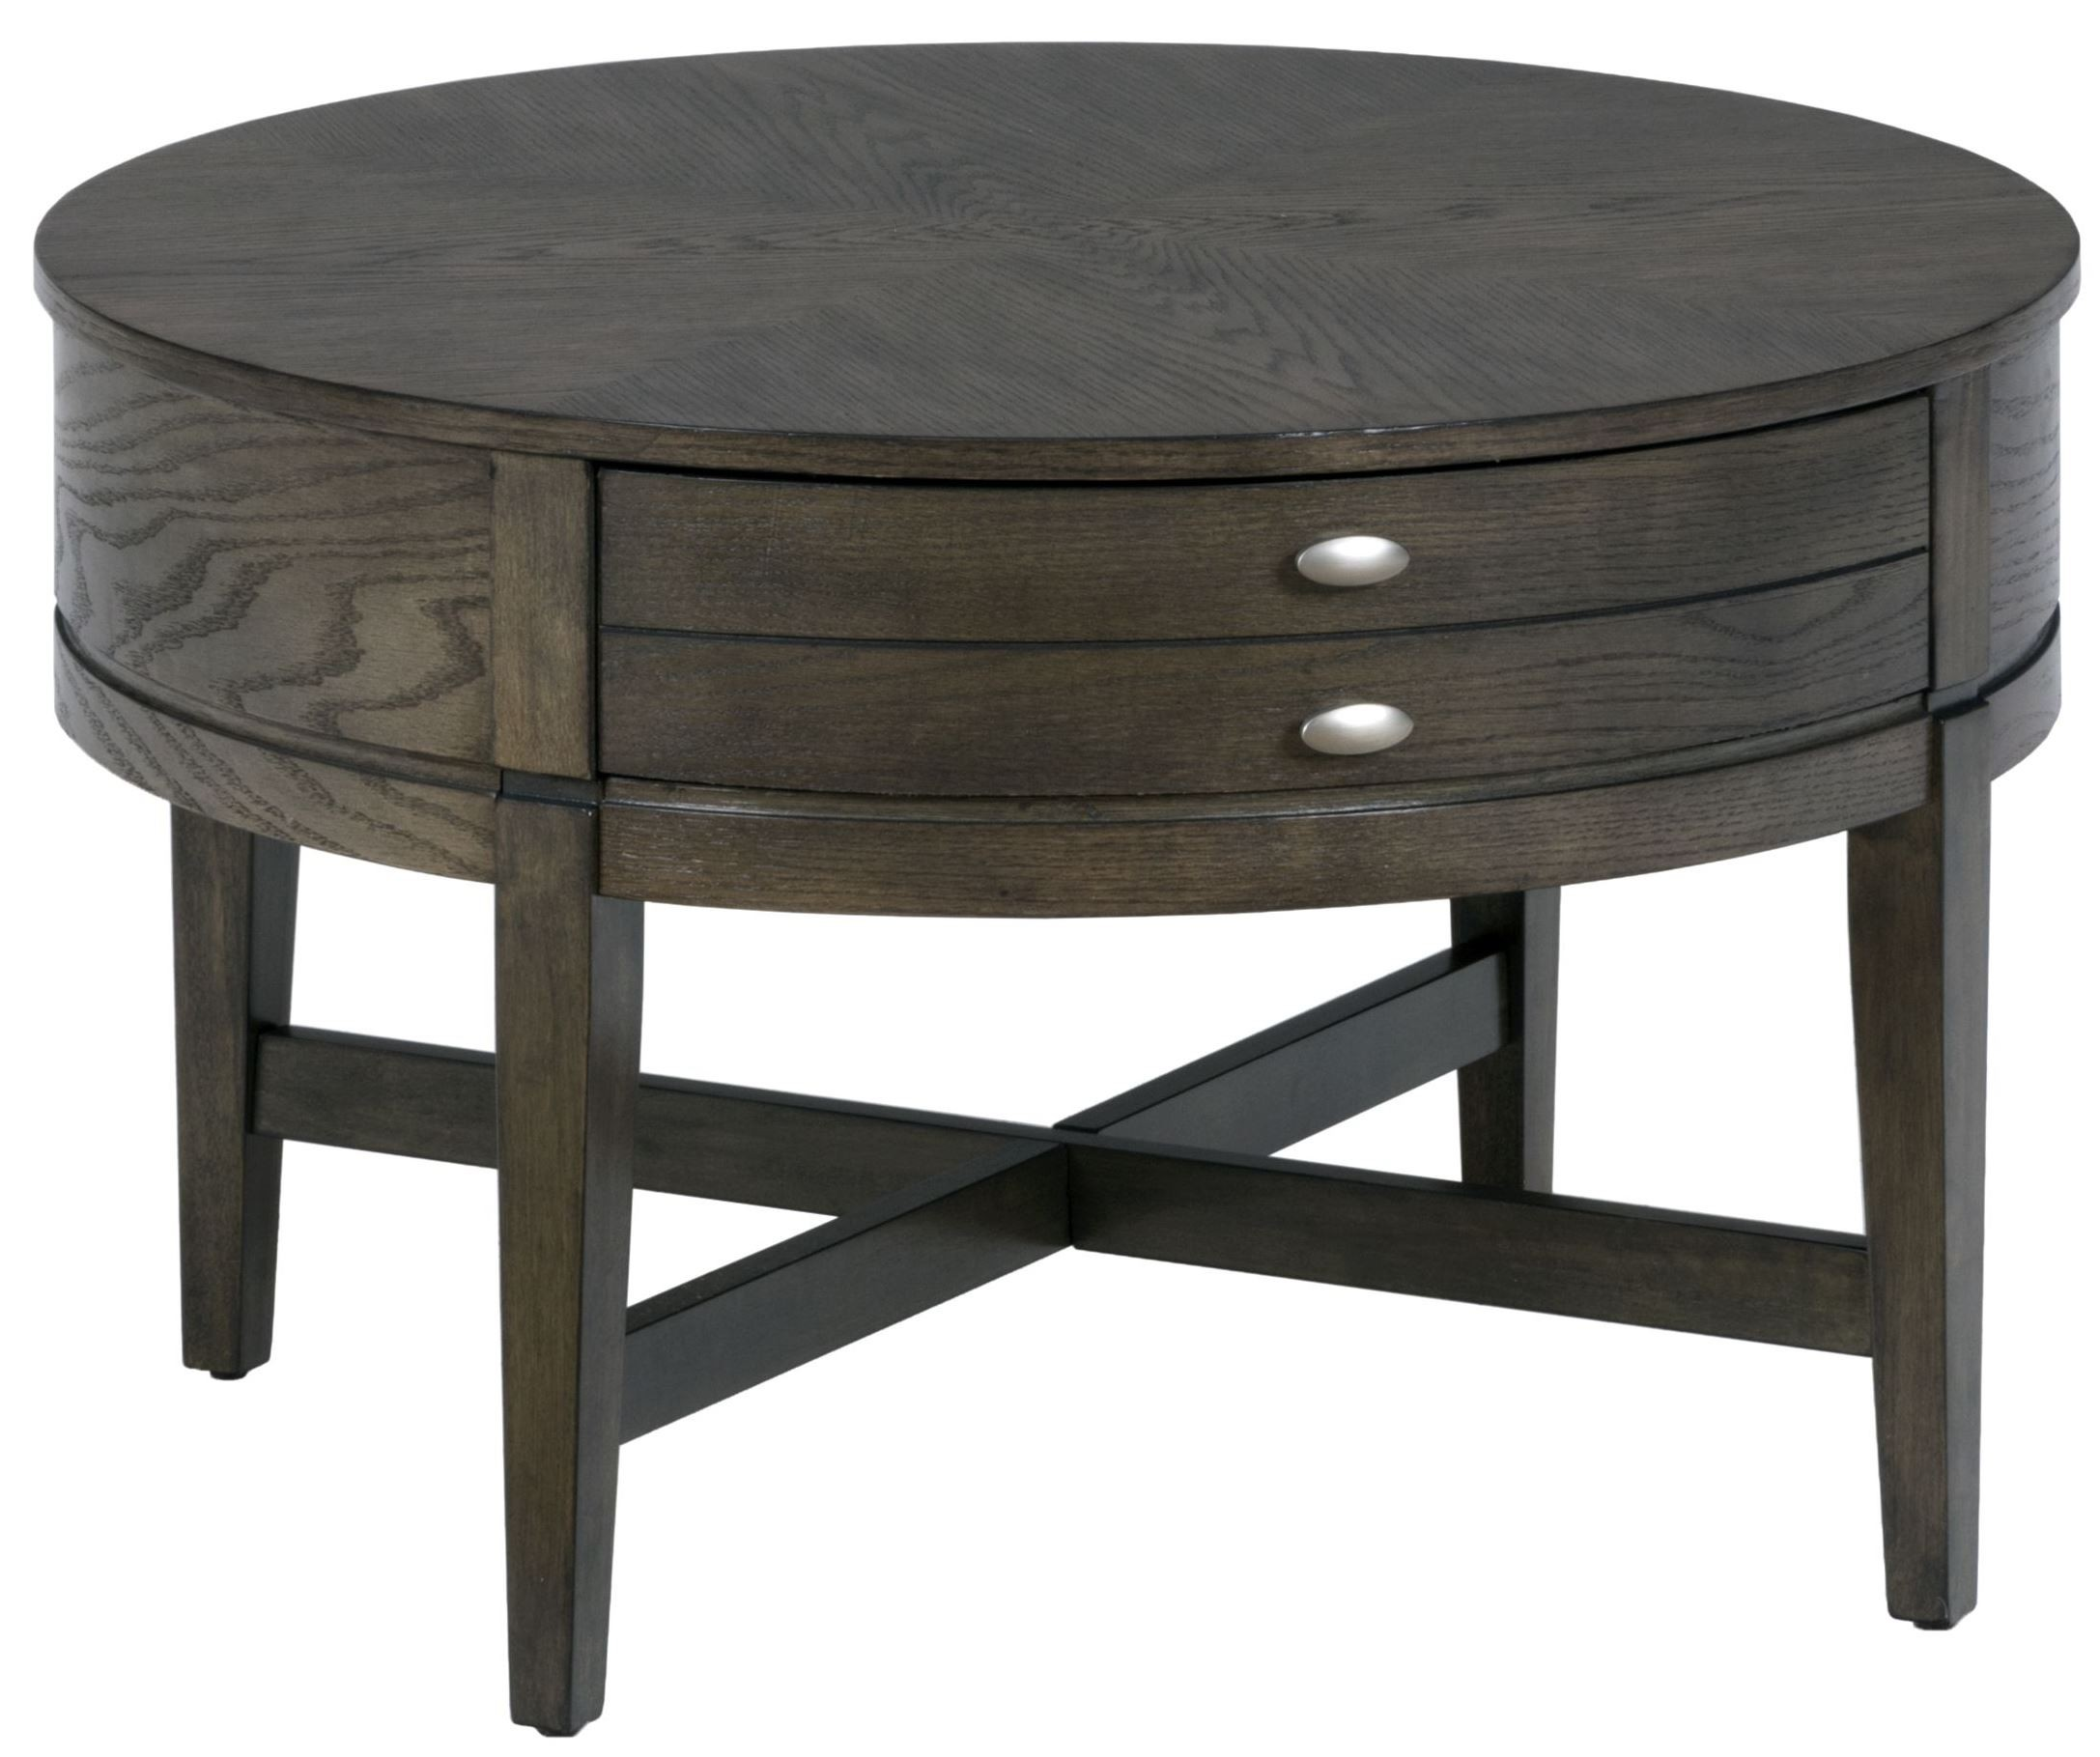 antique grey round cocktail table from jofran coleman furniture. Black Bedroom Furniture Sets. Home Design Ideas